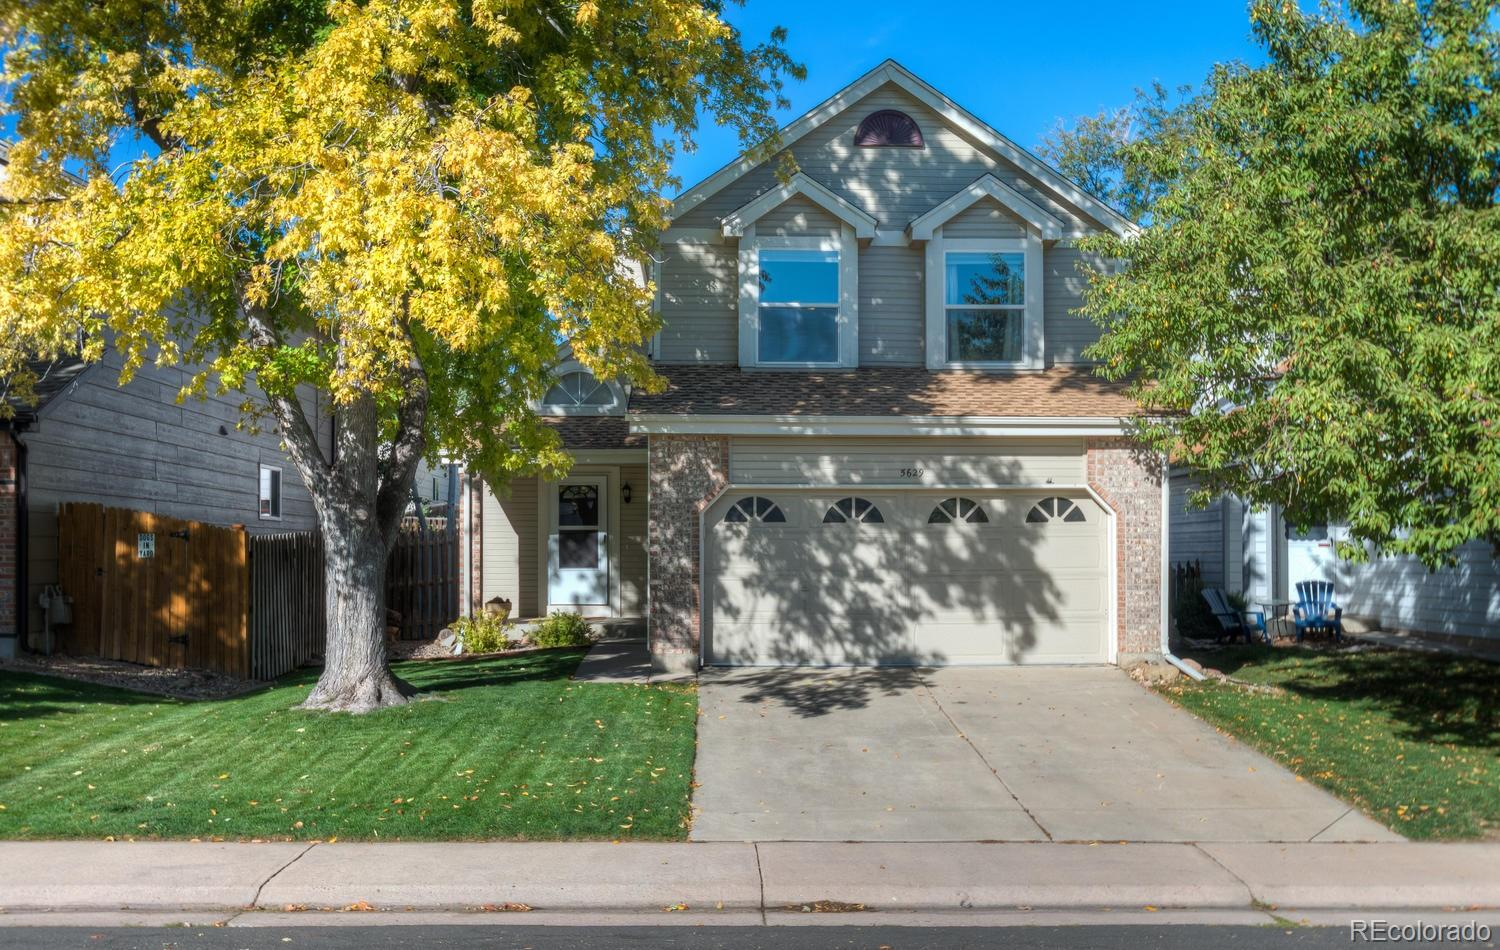 MLS# 2006537 - 32 - 5629 S Youngfield Way, Littleton, CO 80127